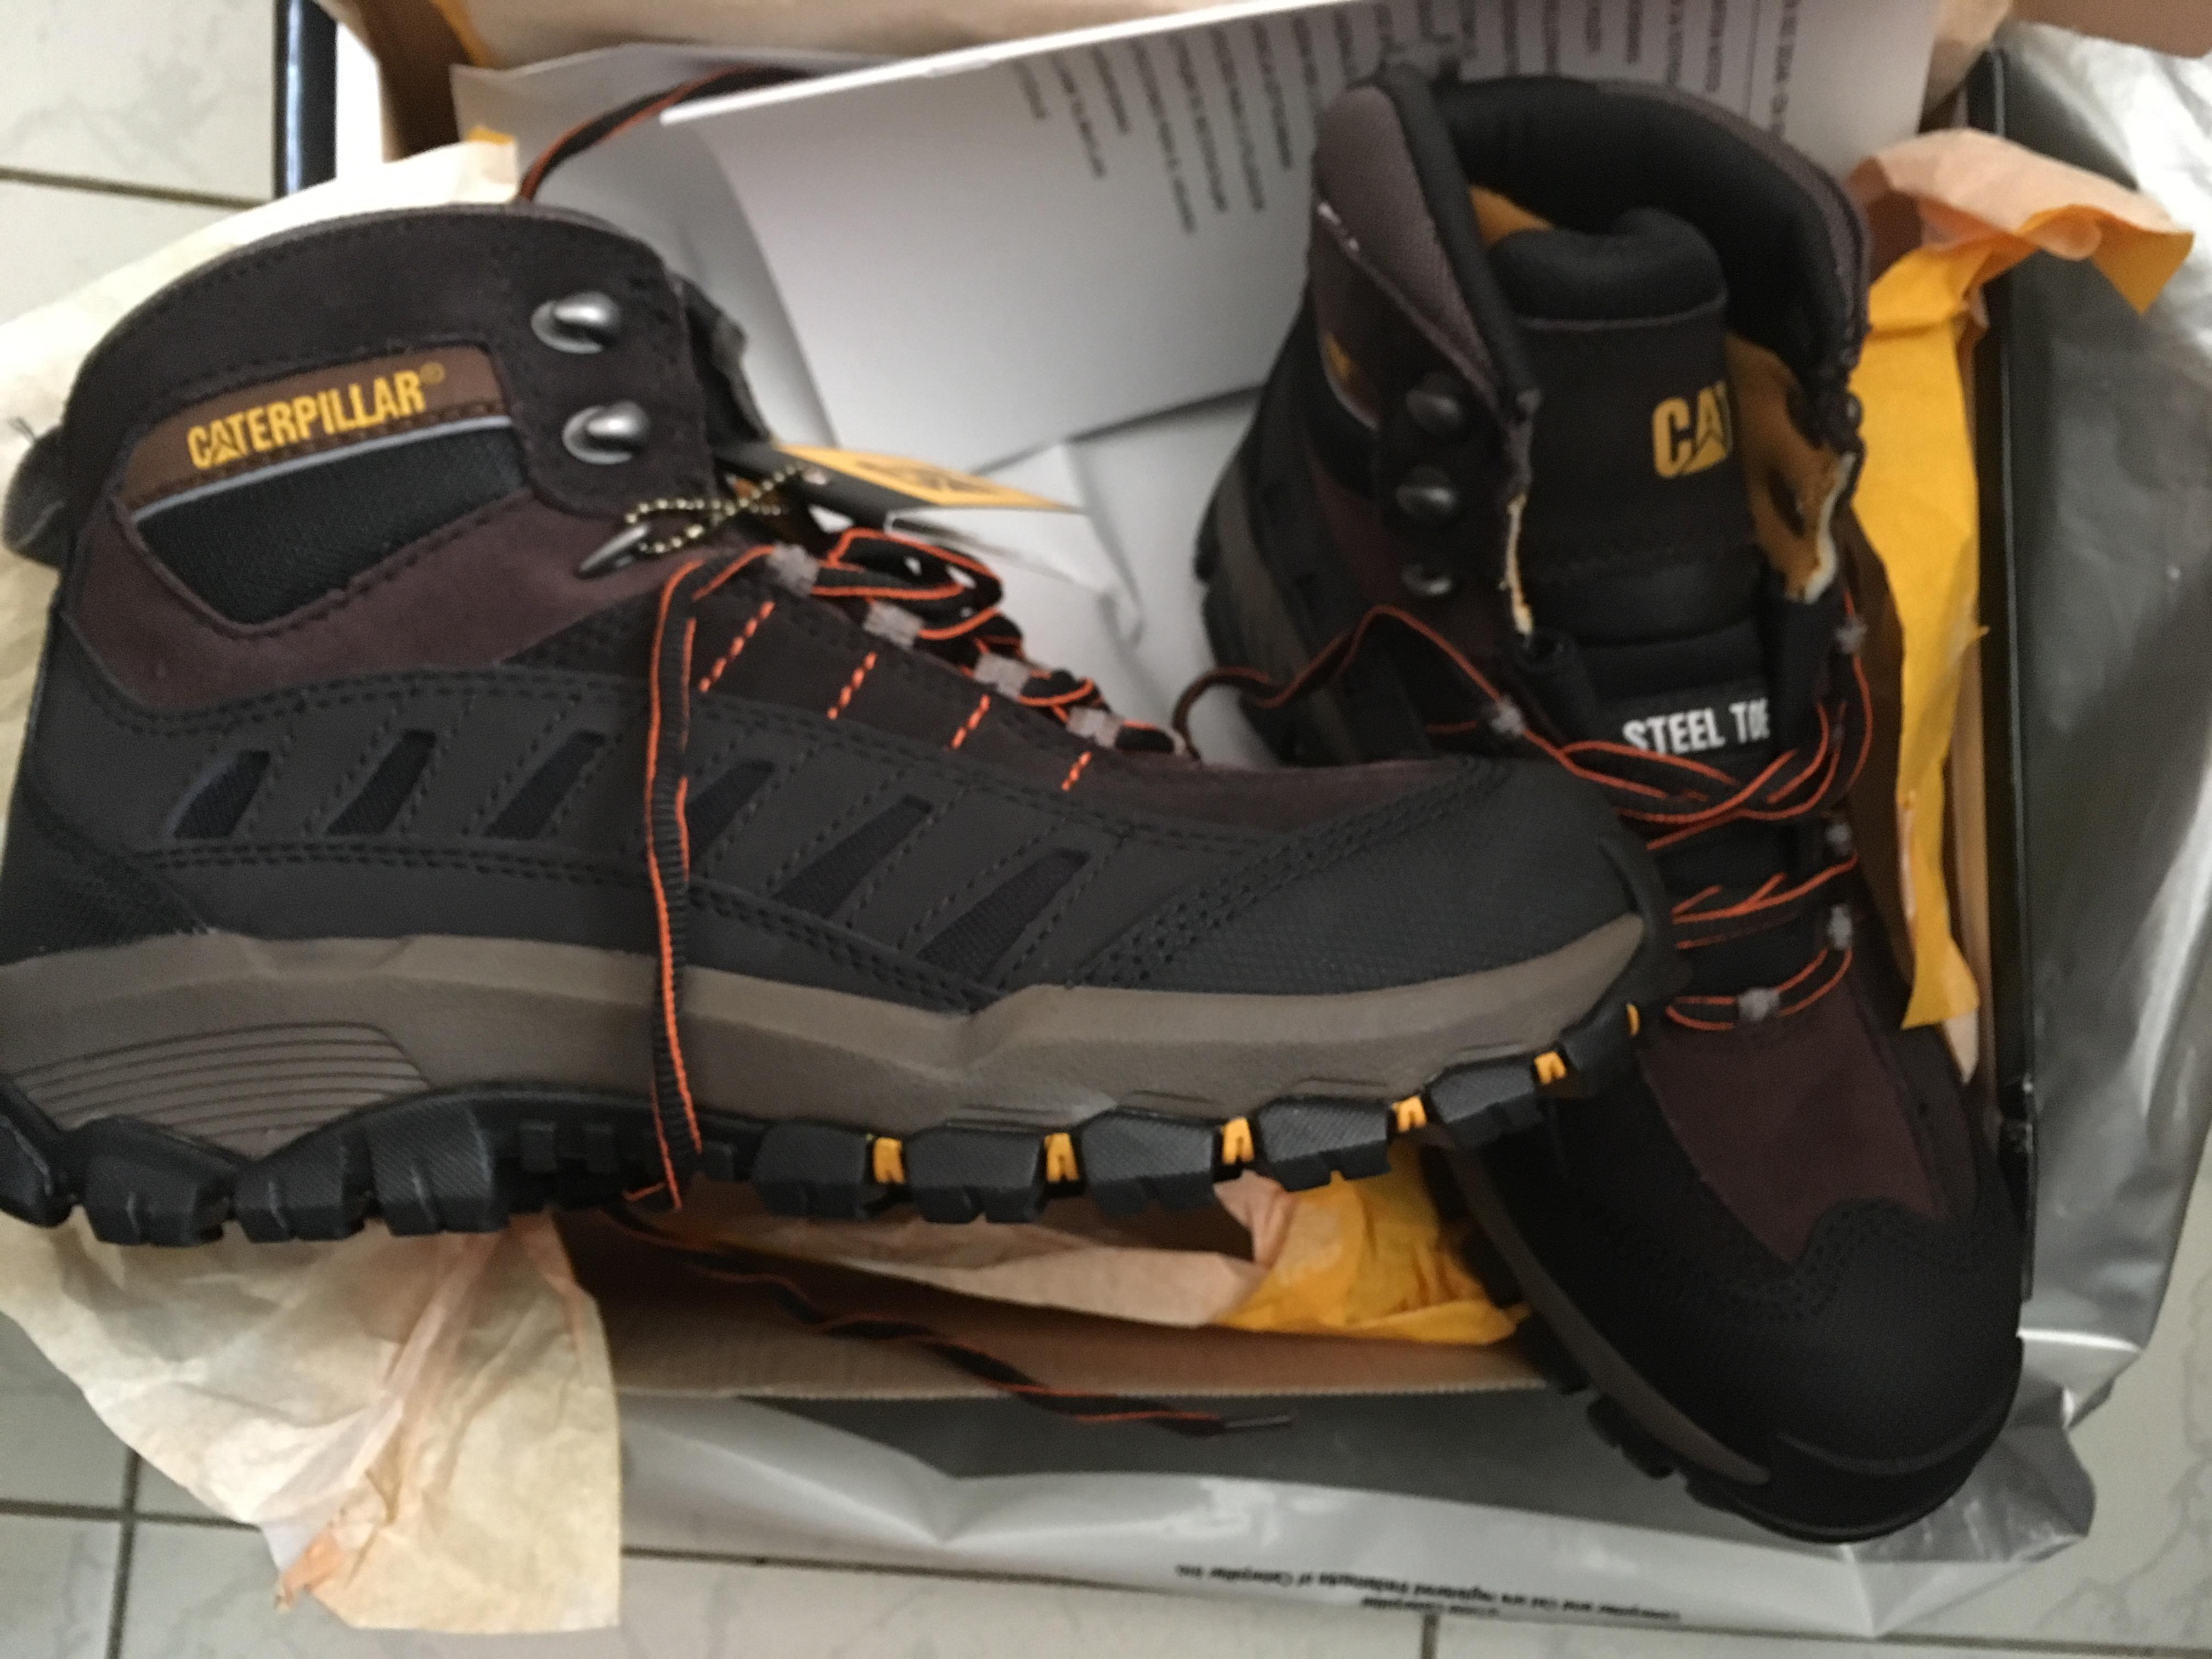 Brand New Cat Caterpillar Safety Shoes With Steel Toe In Boxed